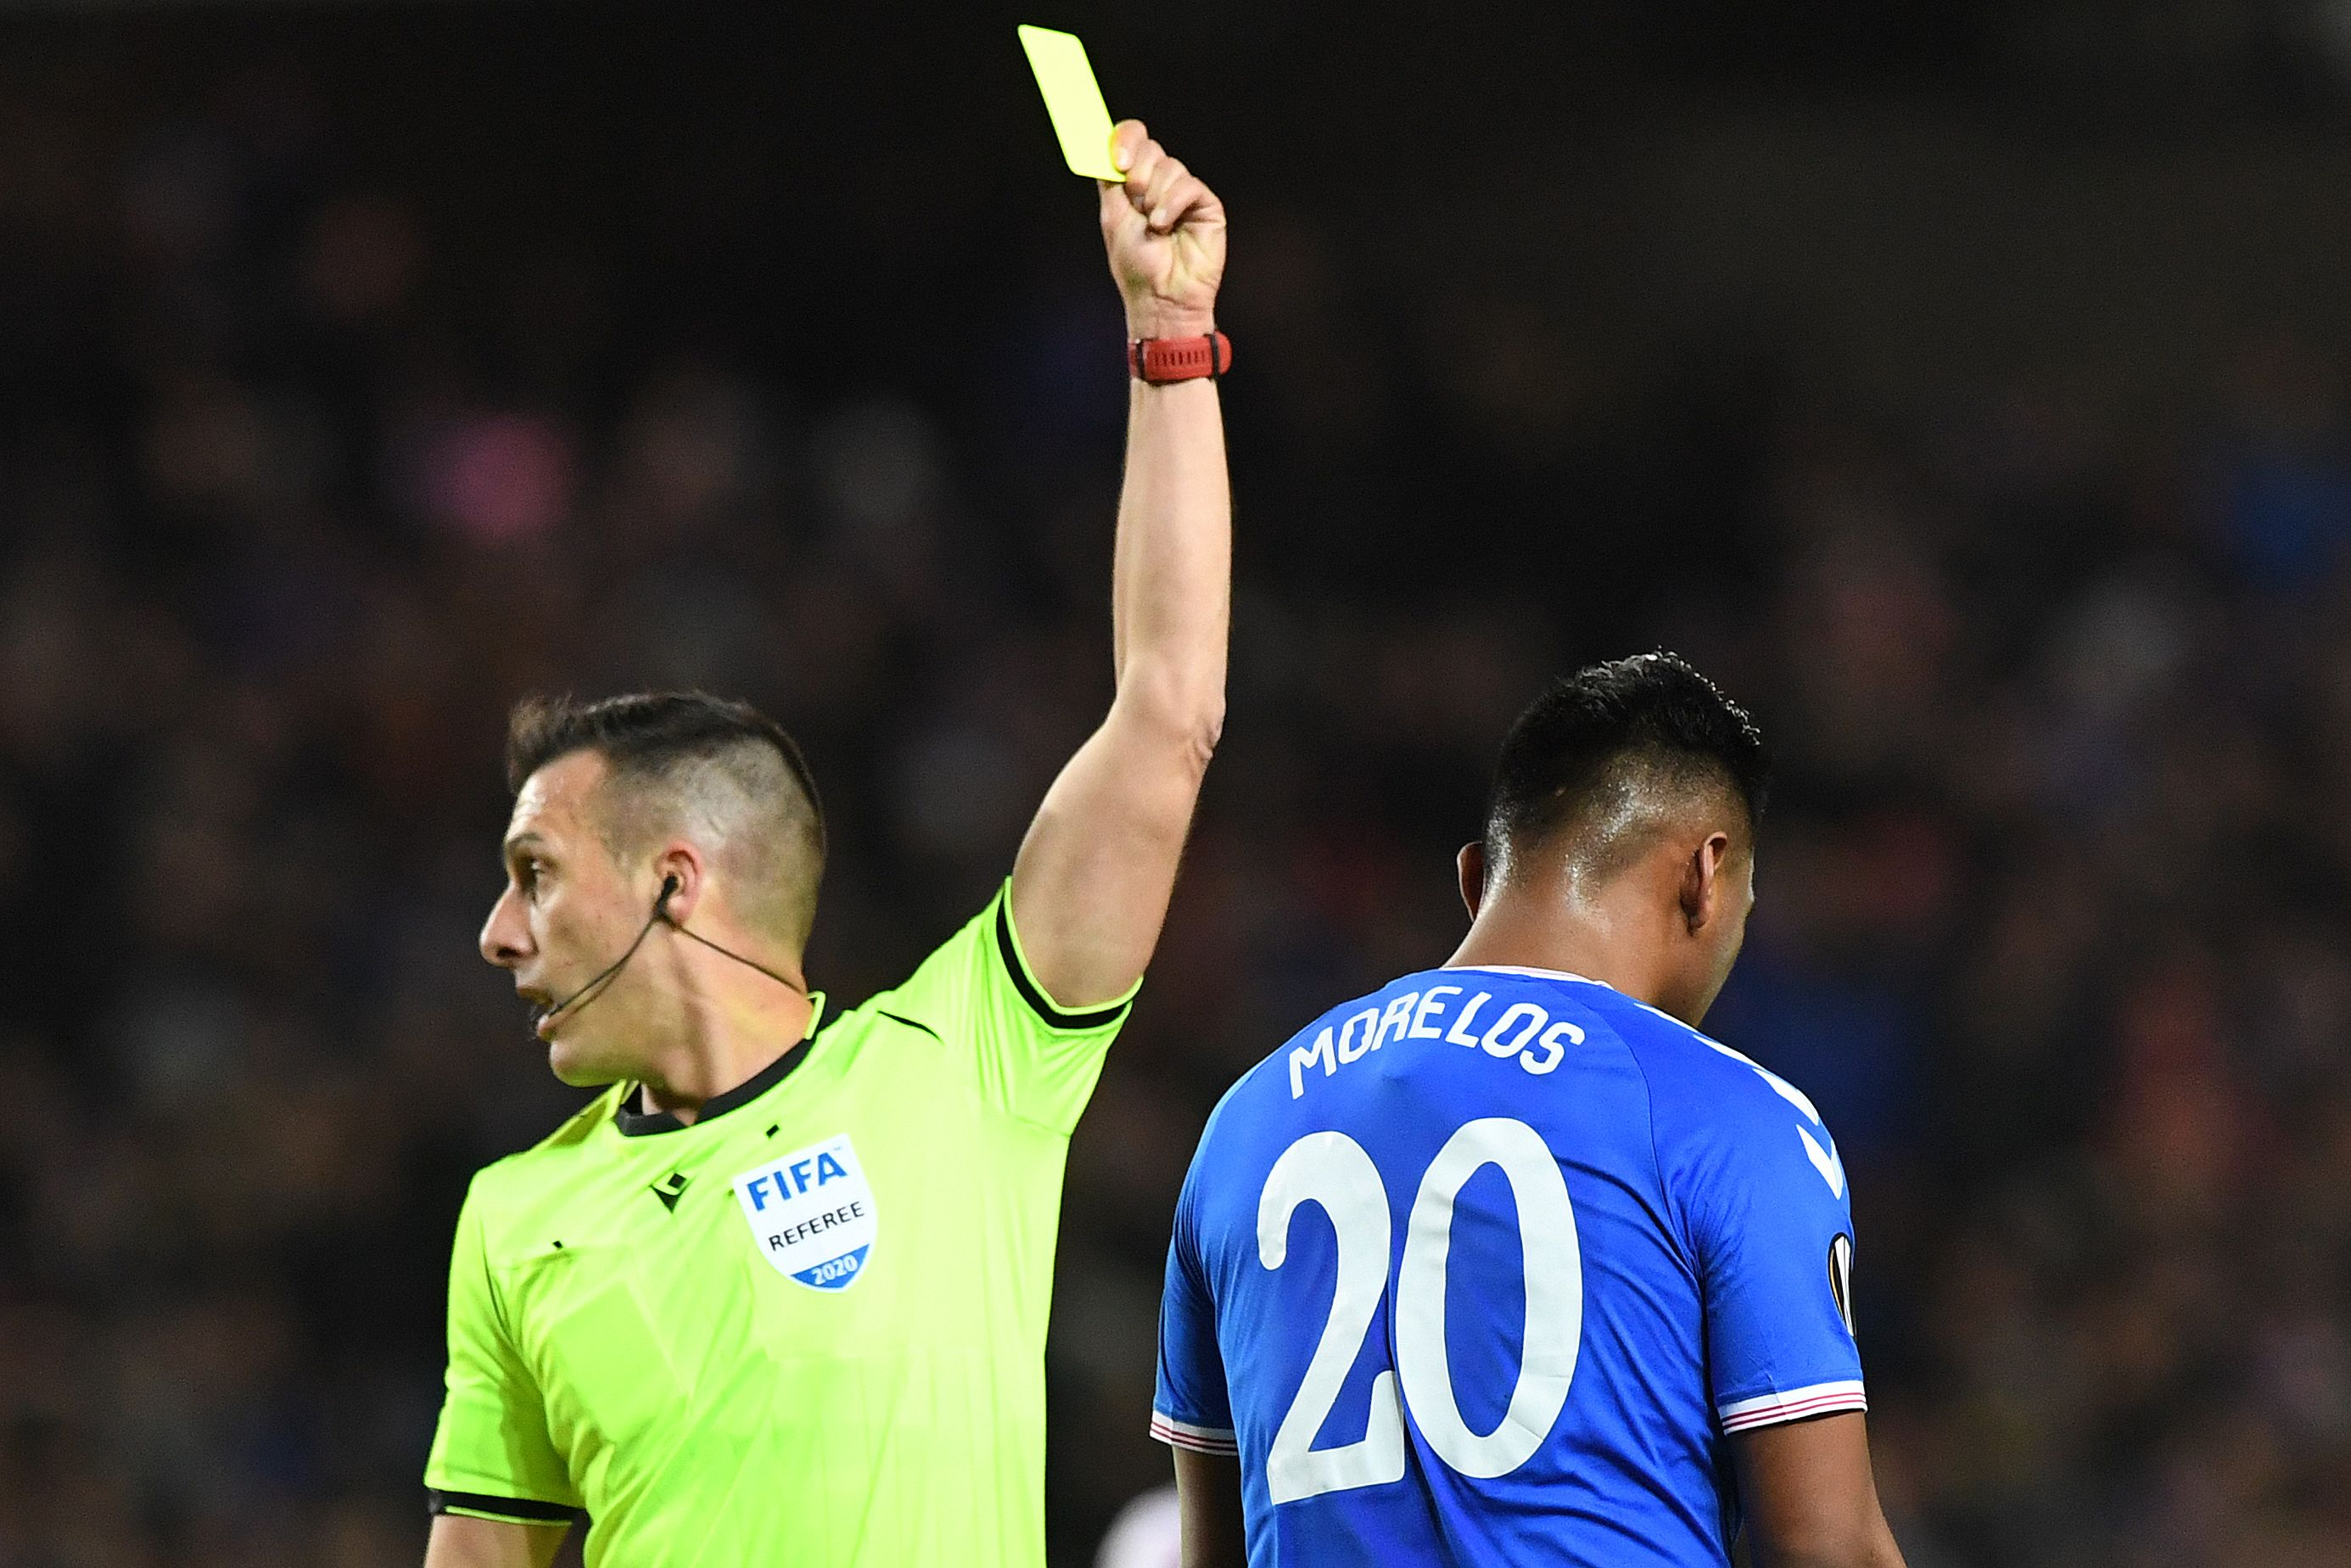 Rangers' star Alfredo Morelos is suspended (Photo by ANDY BUCHANAN/AFP via Getty Images)